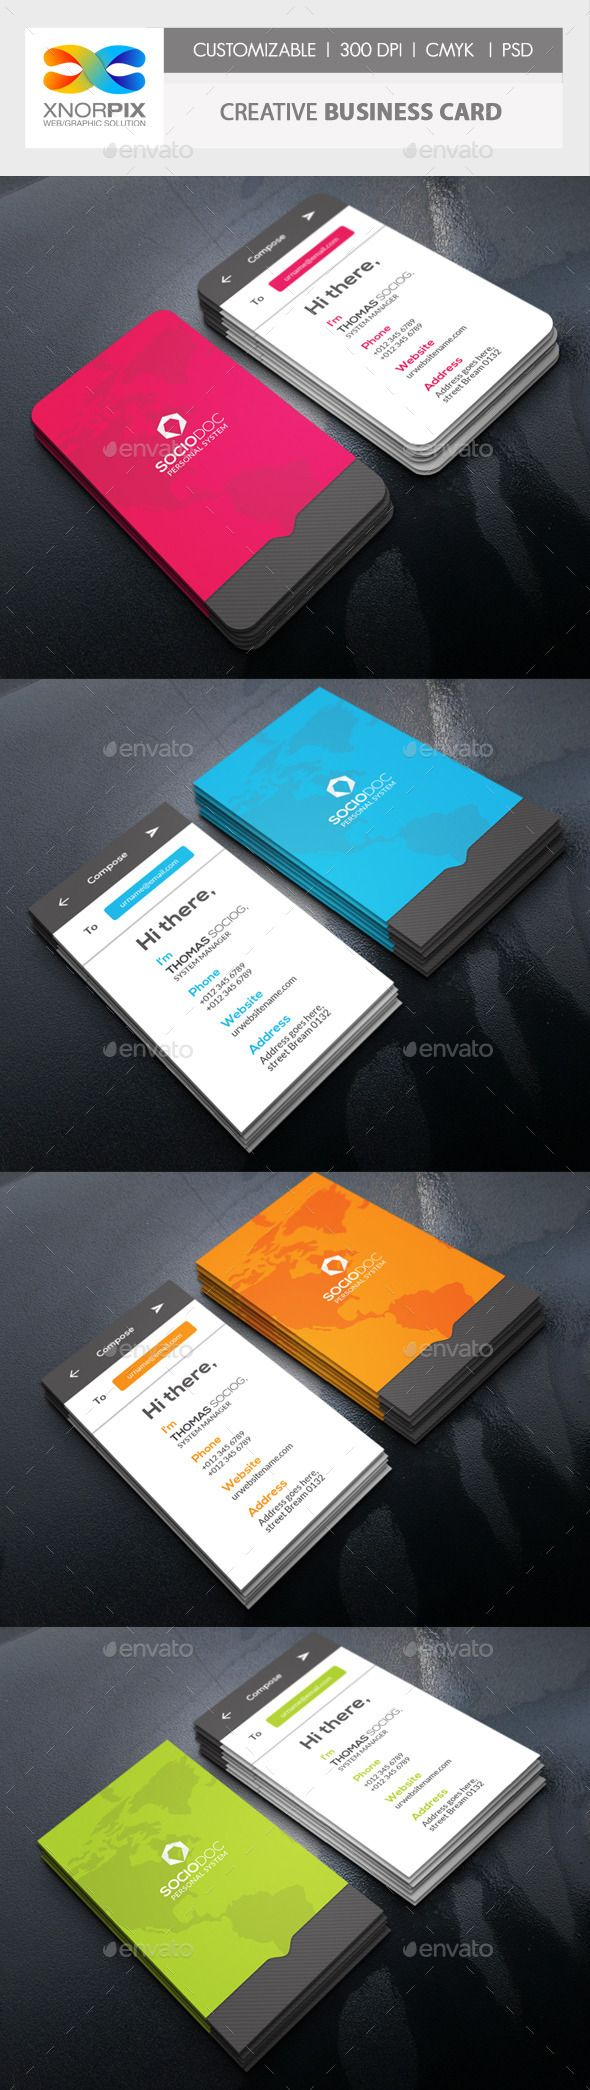 Message Business Card | Creative business cards, Messages and Business